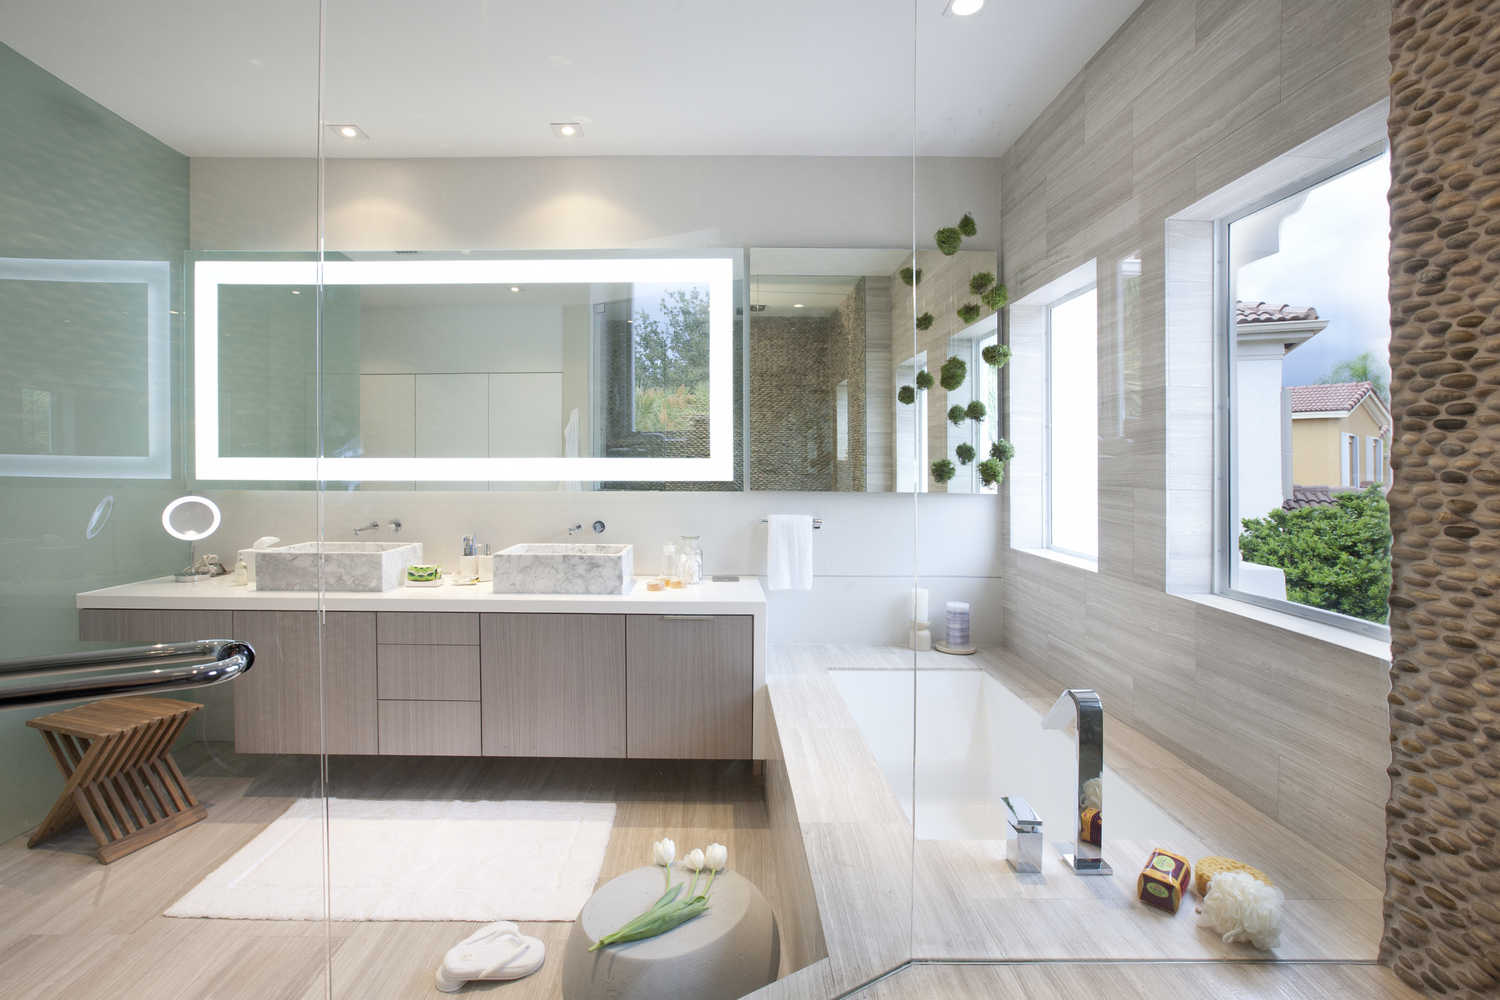 Master Bathroom Ideas - Residential Interior Design From DKOR Interiors